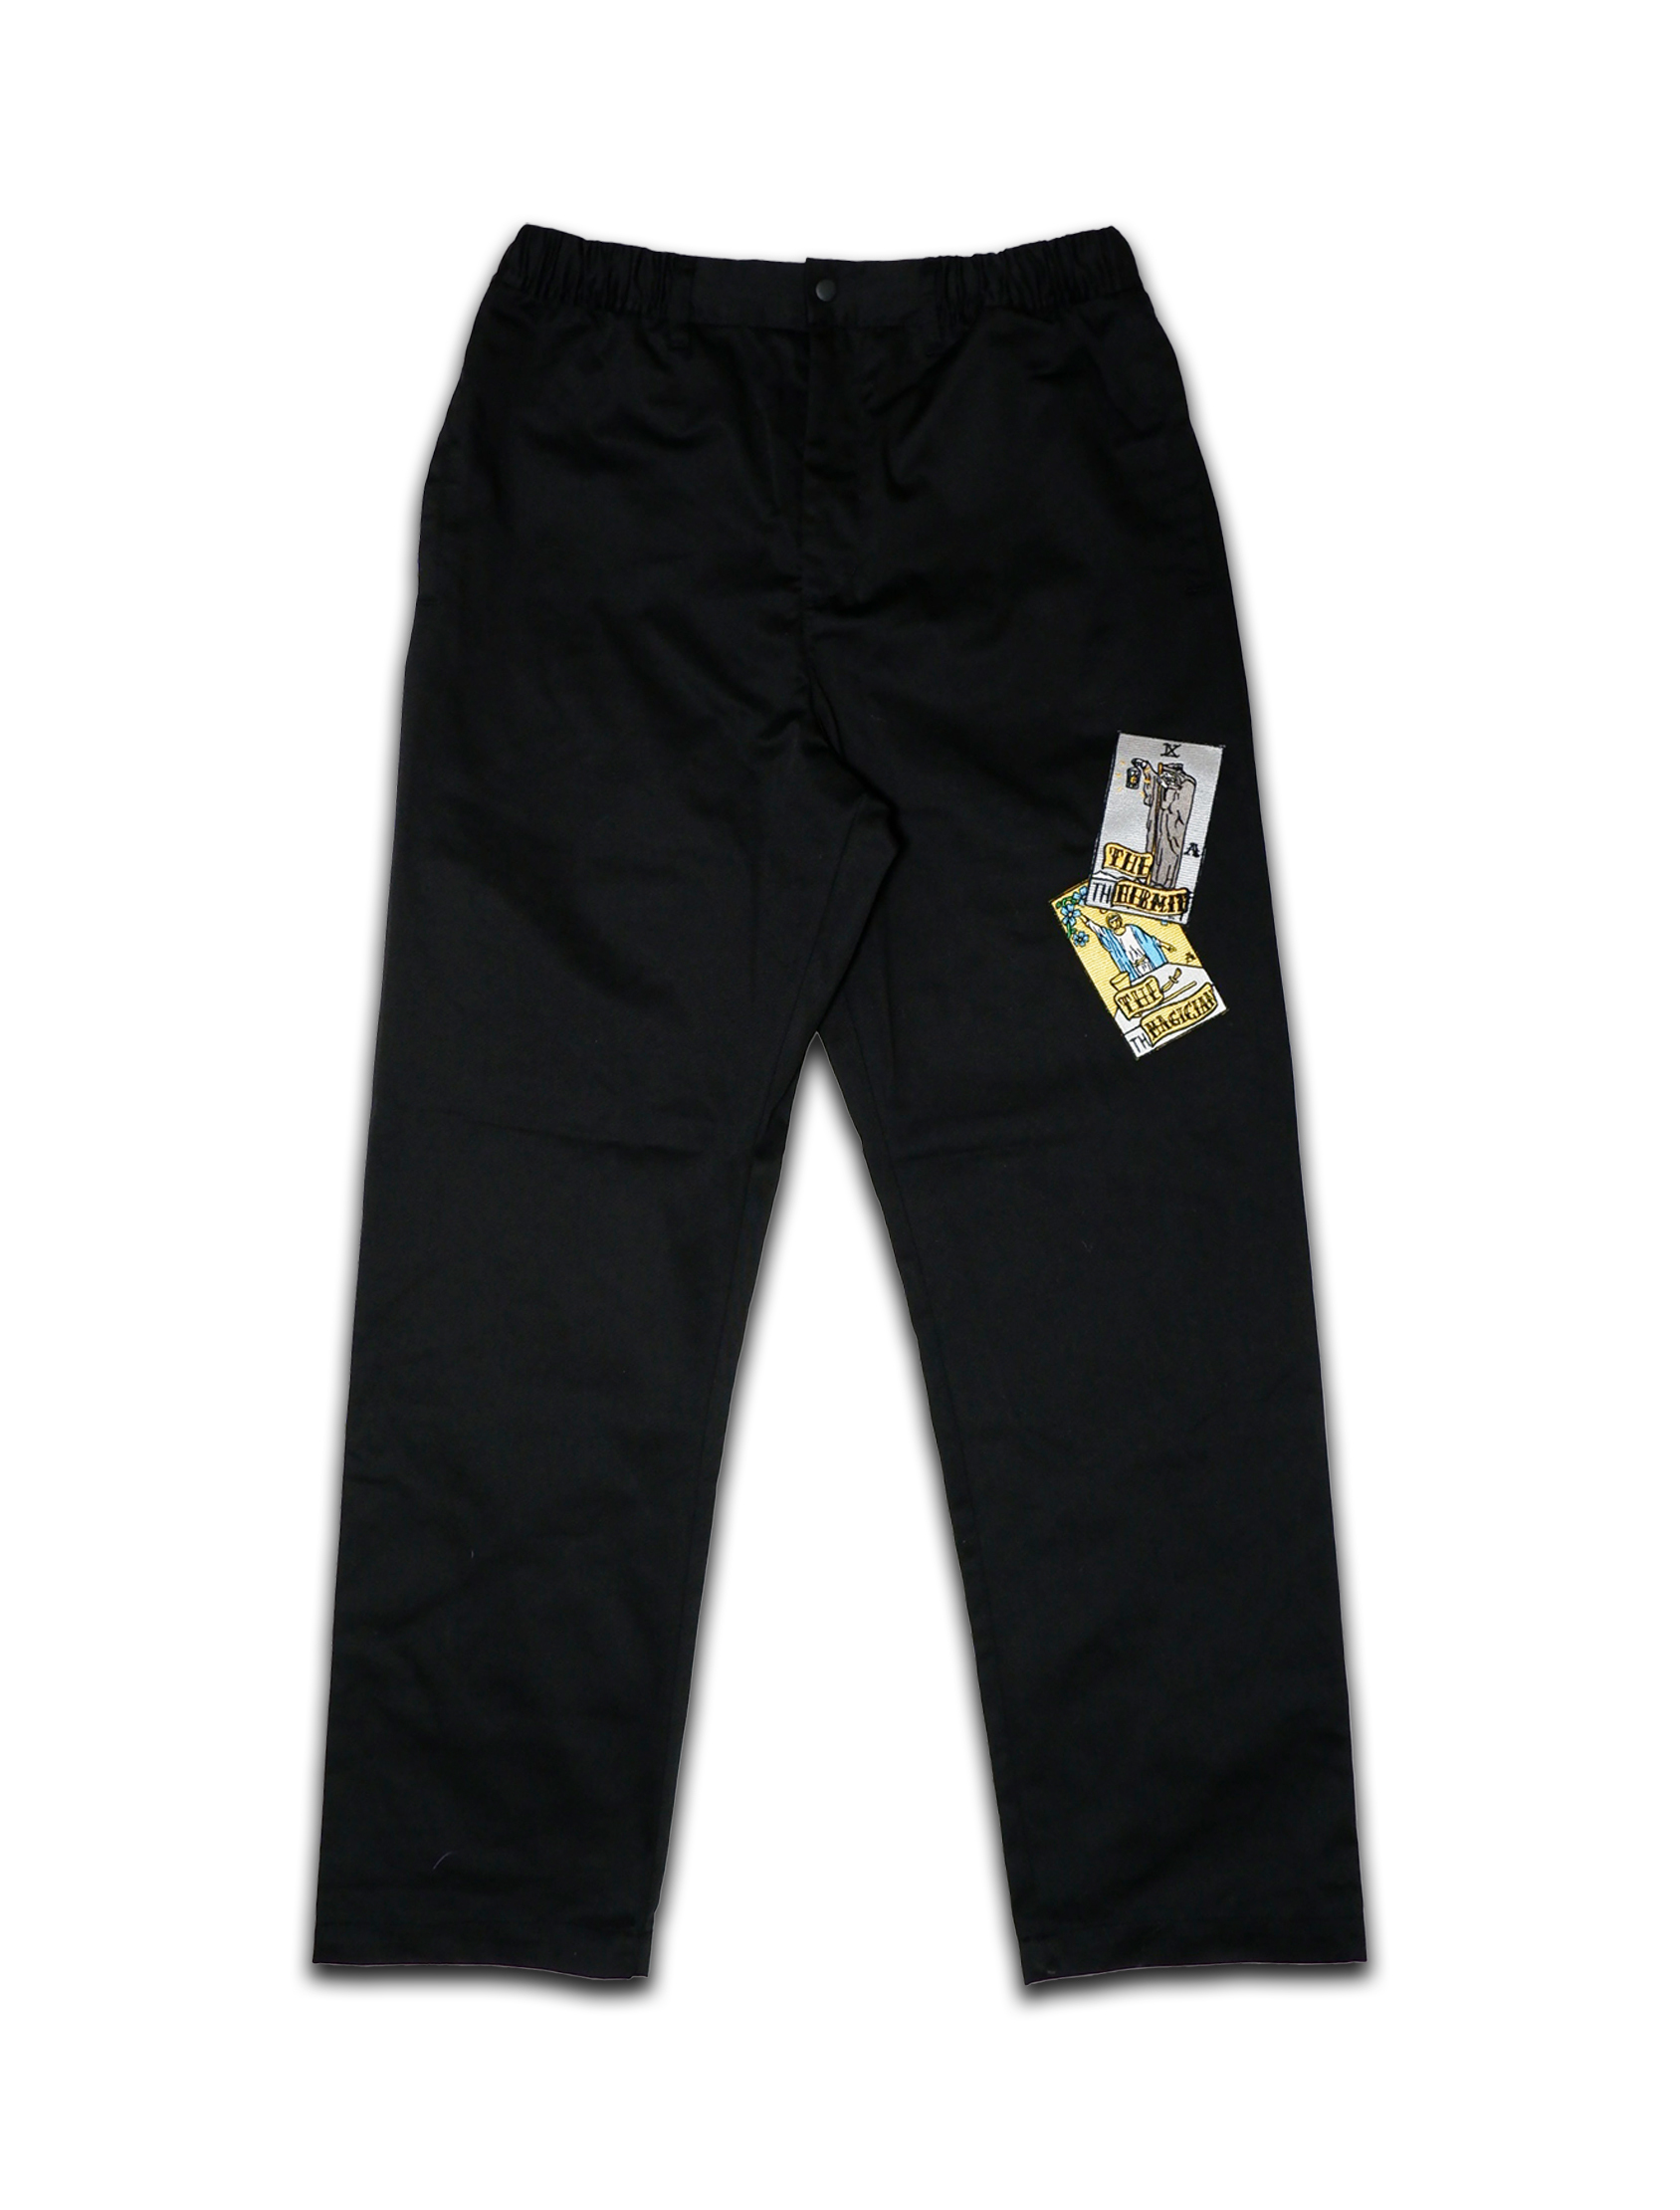 1&9 WIDE WORK PANTS black